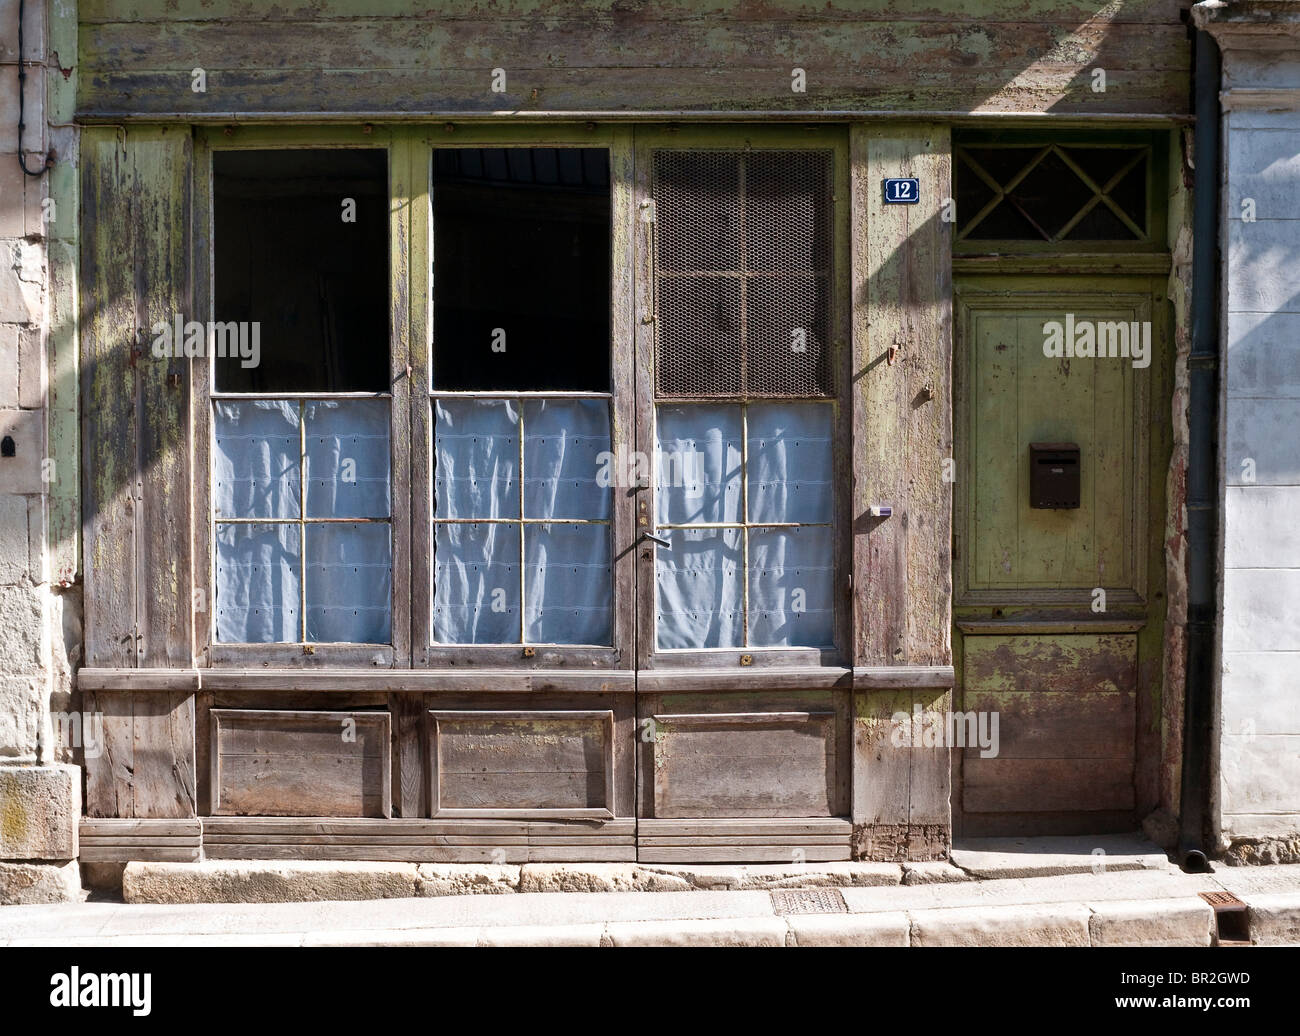 Old closed shop frontage - France. - Stock Image